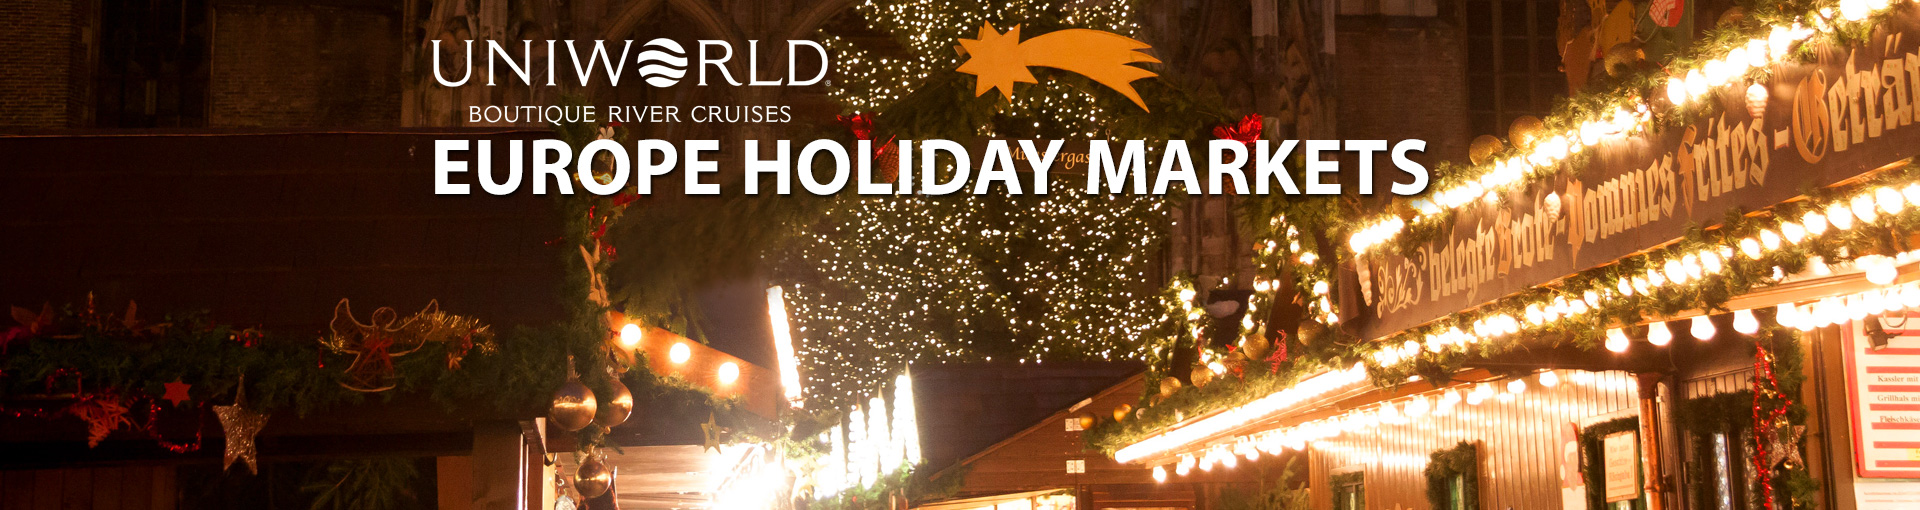 Uniworld River Cruises to Europe's Holiday Markets